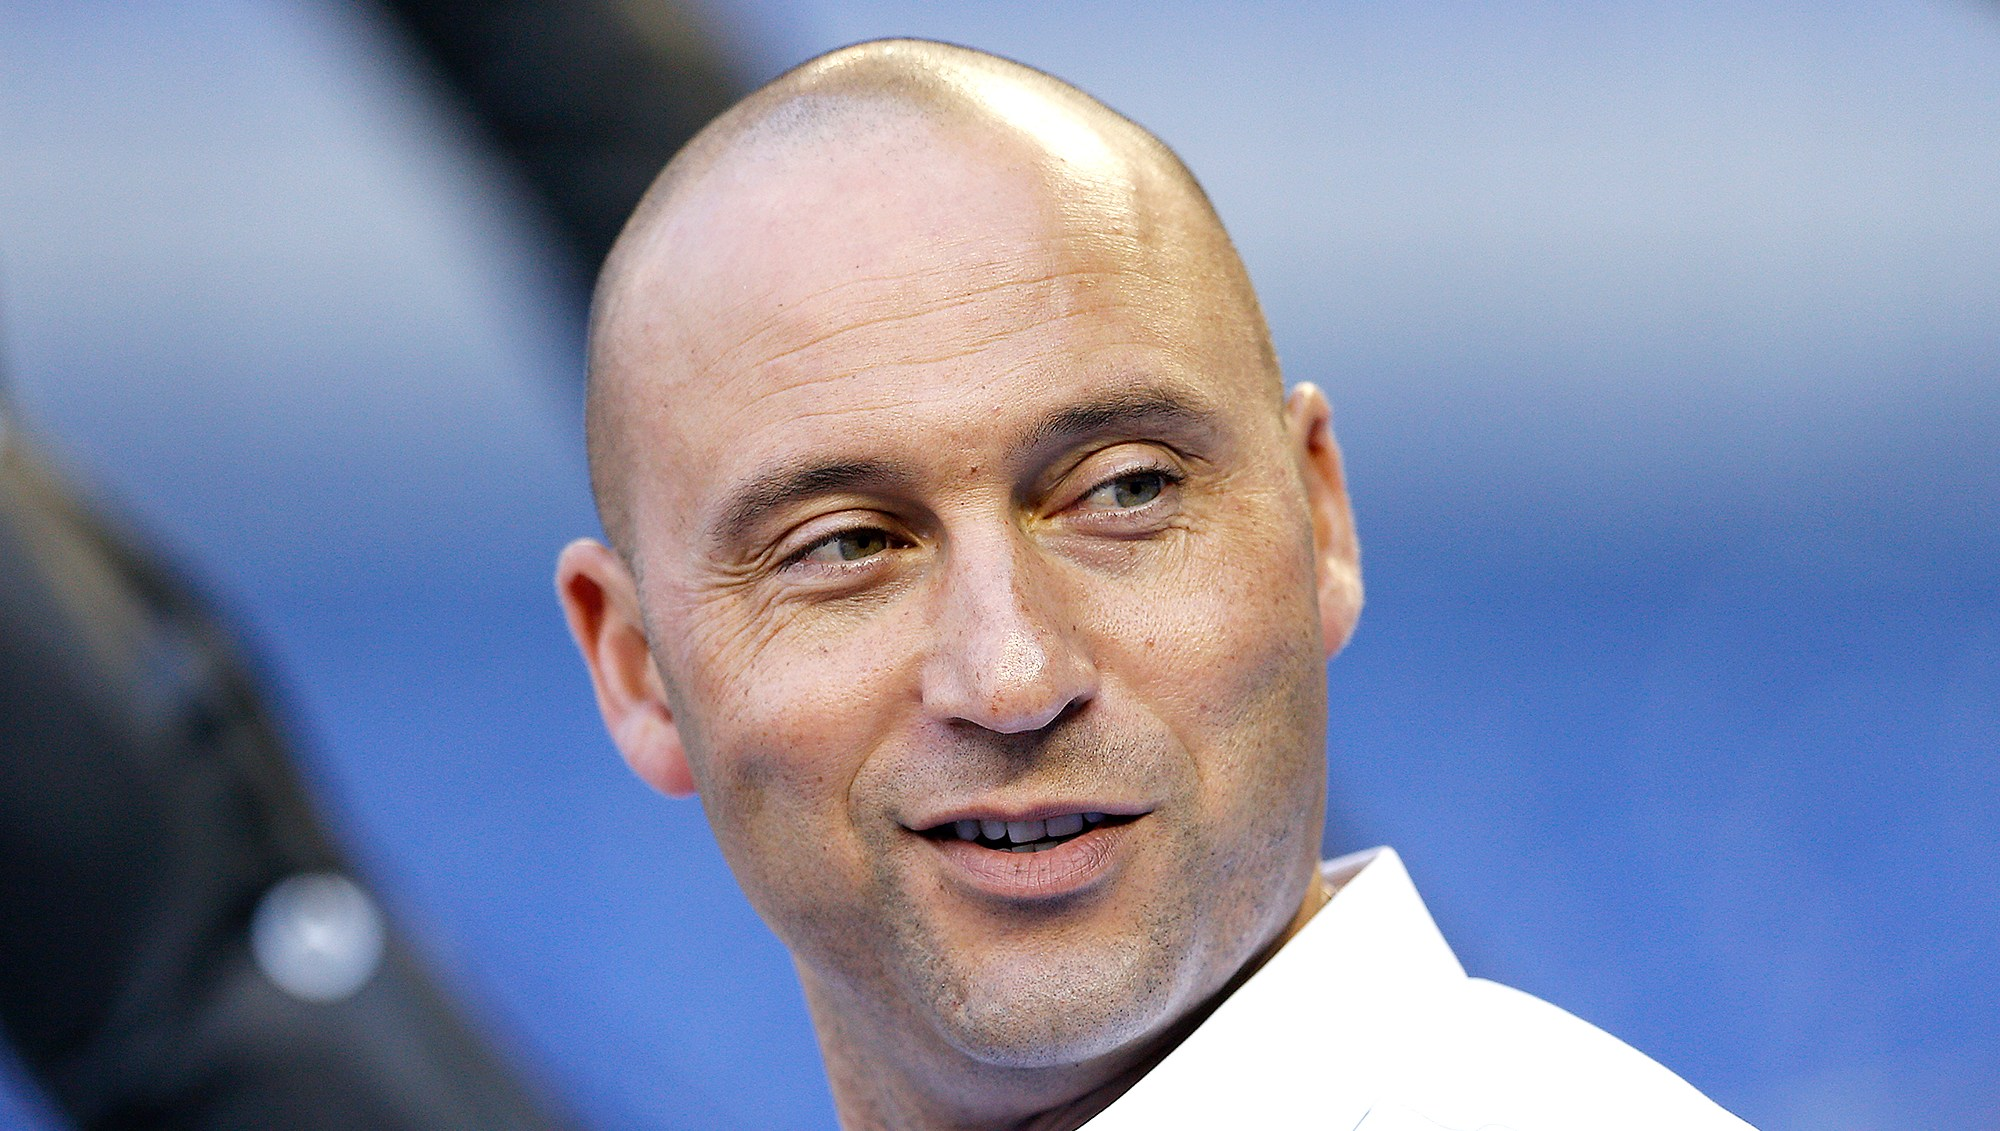 Derek-Jeter-gushes-about-daughters